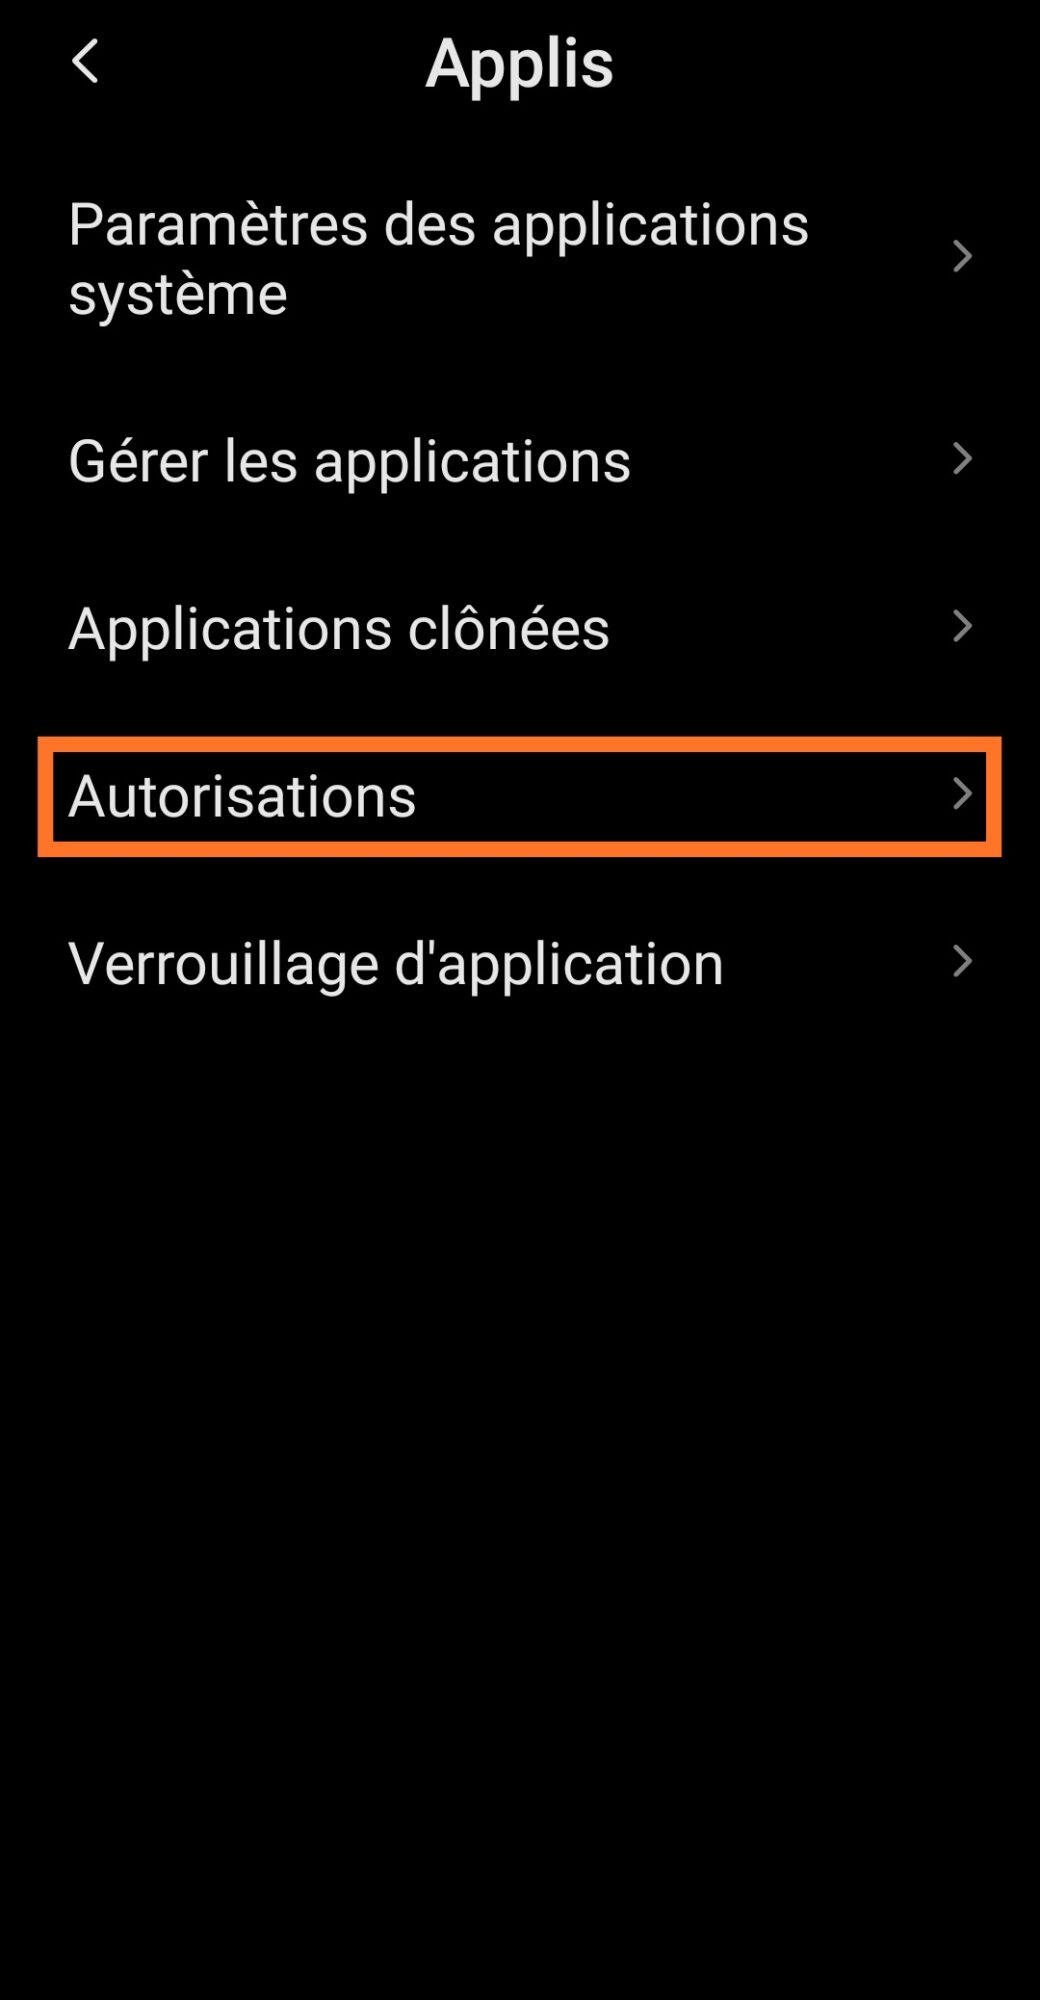 parametres-application-autorisations-donnees-personnelles-android-10